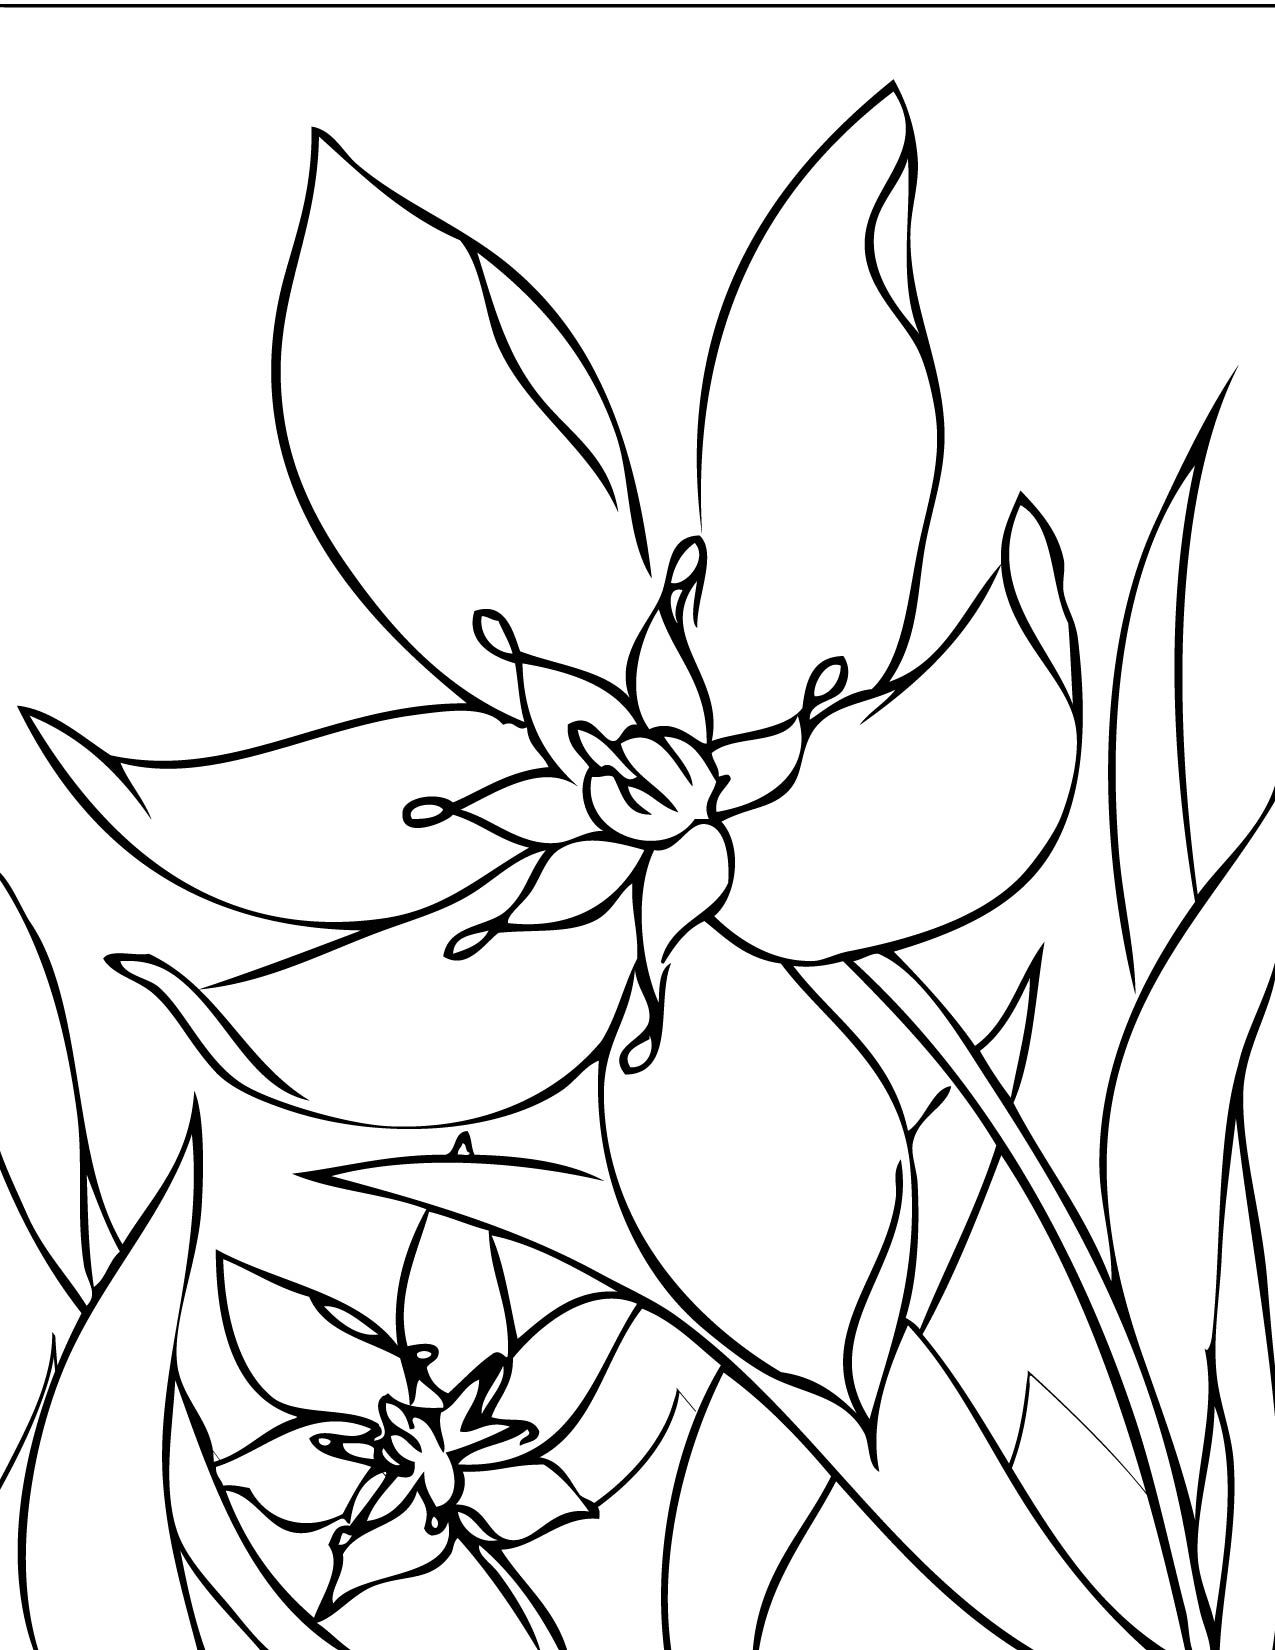 Rainforest flower coloring pages - Flower Page Printable Coloring Sheets Print This Page Spring Flowers Coloring Pages Coloring